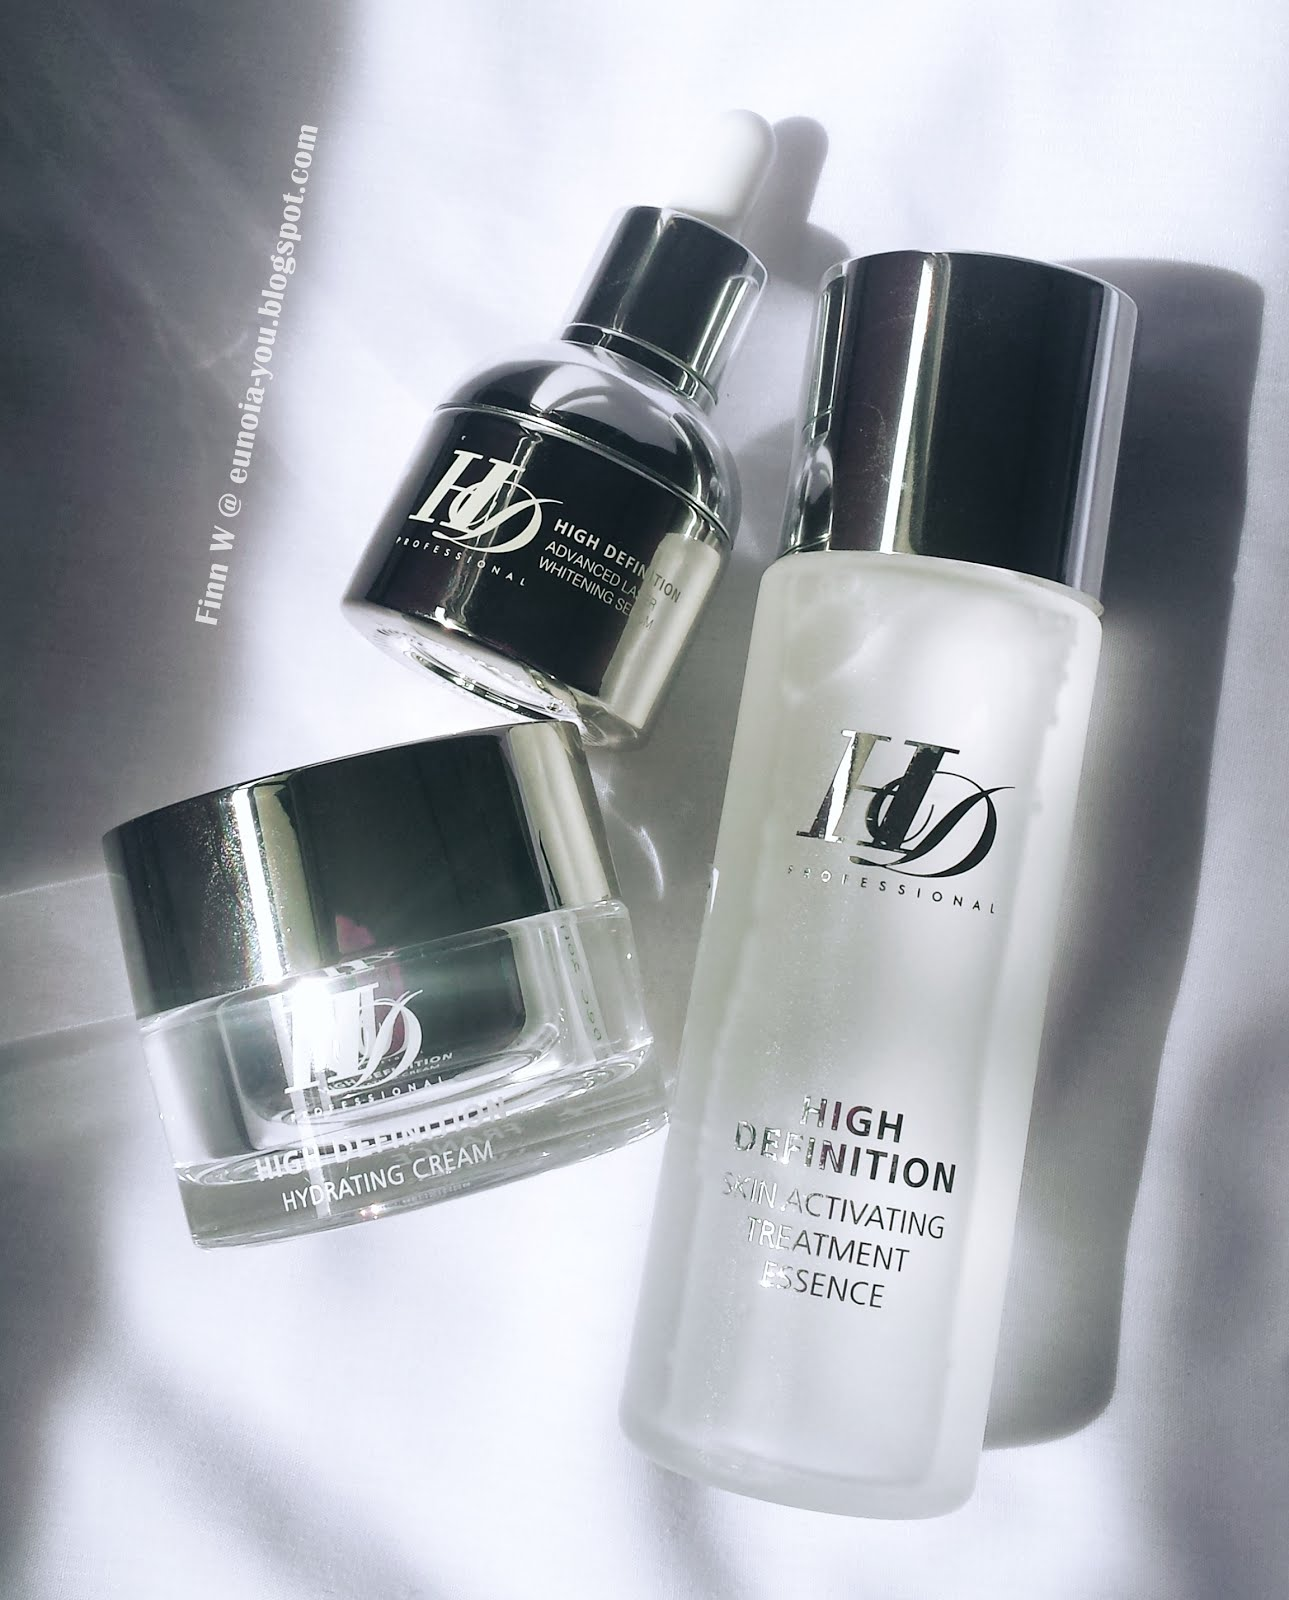 Fly Up High Definition Skincare Worth USD 150